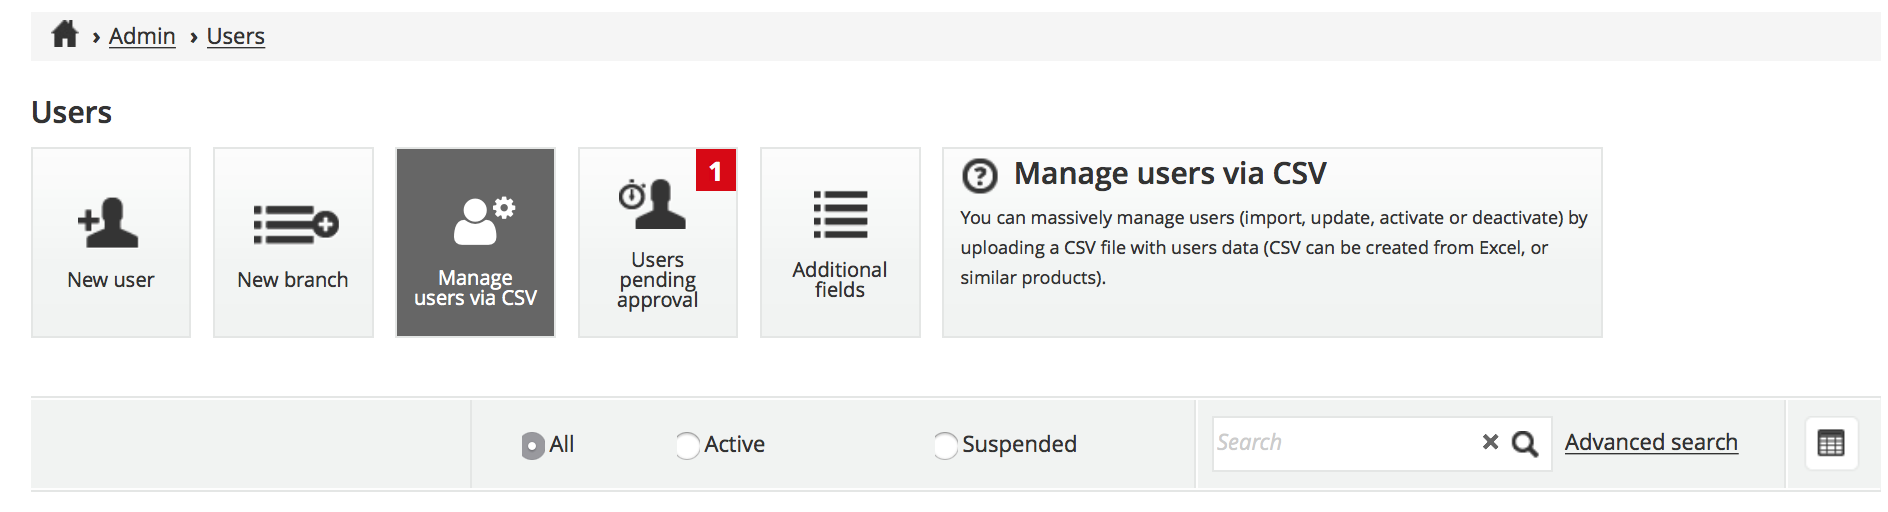 manage users button